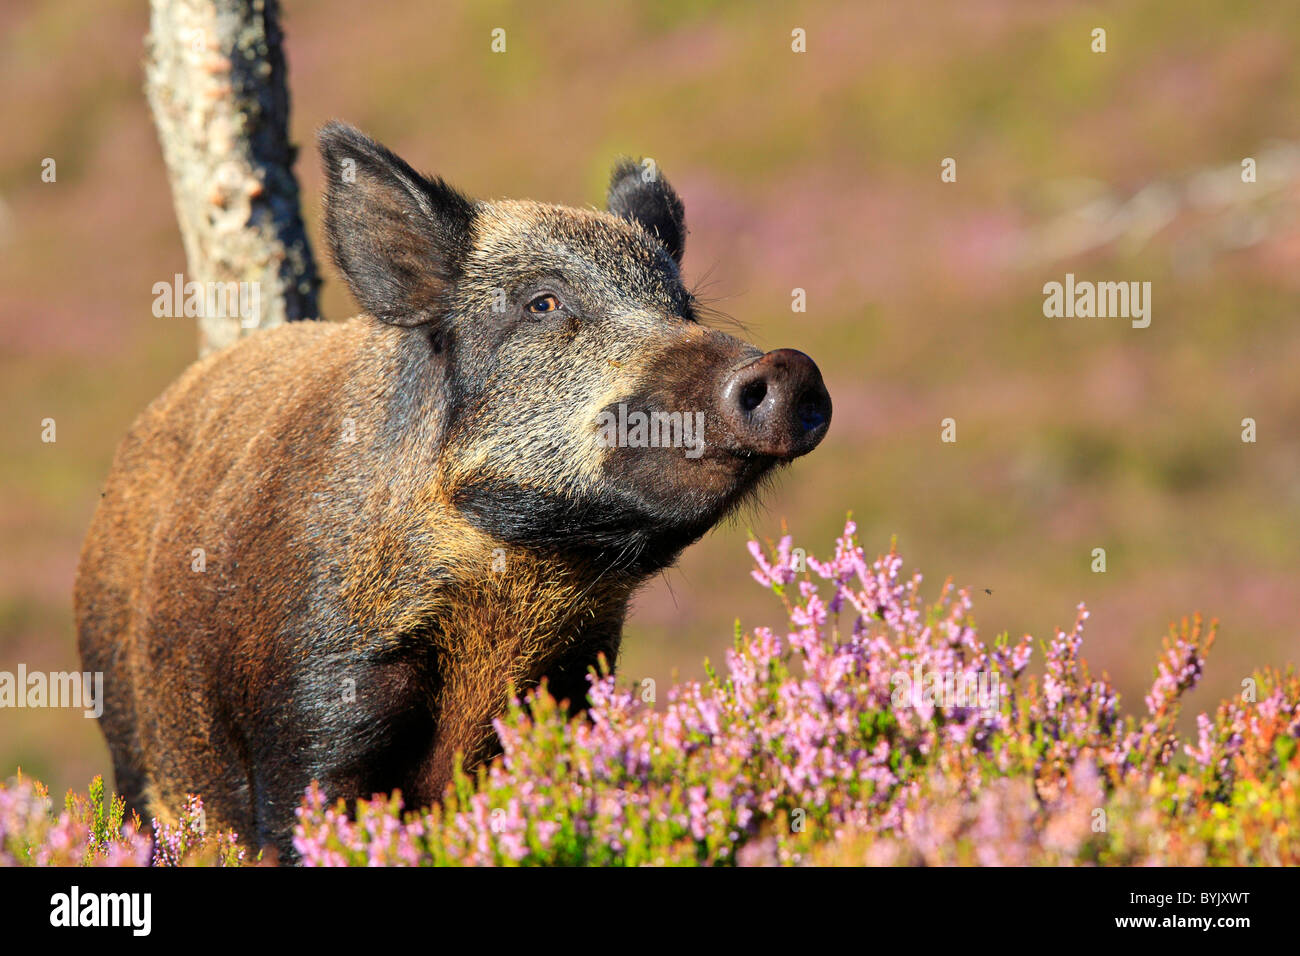 Wild Boar (Sus scrofa) standing in flowering heather. Highland Wildlife Park, Scotland. Stock Photo